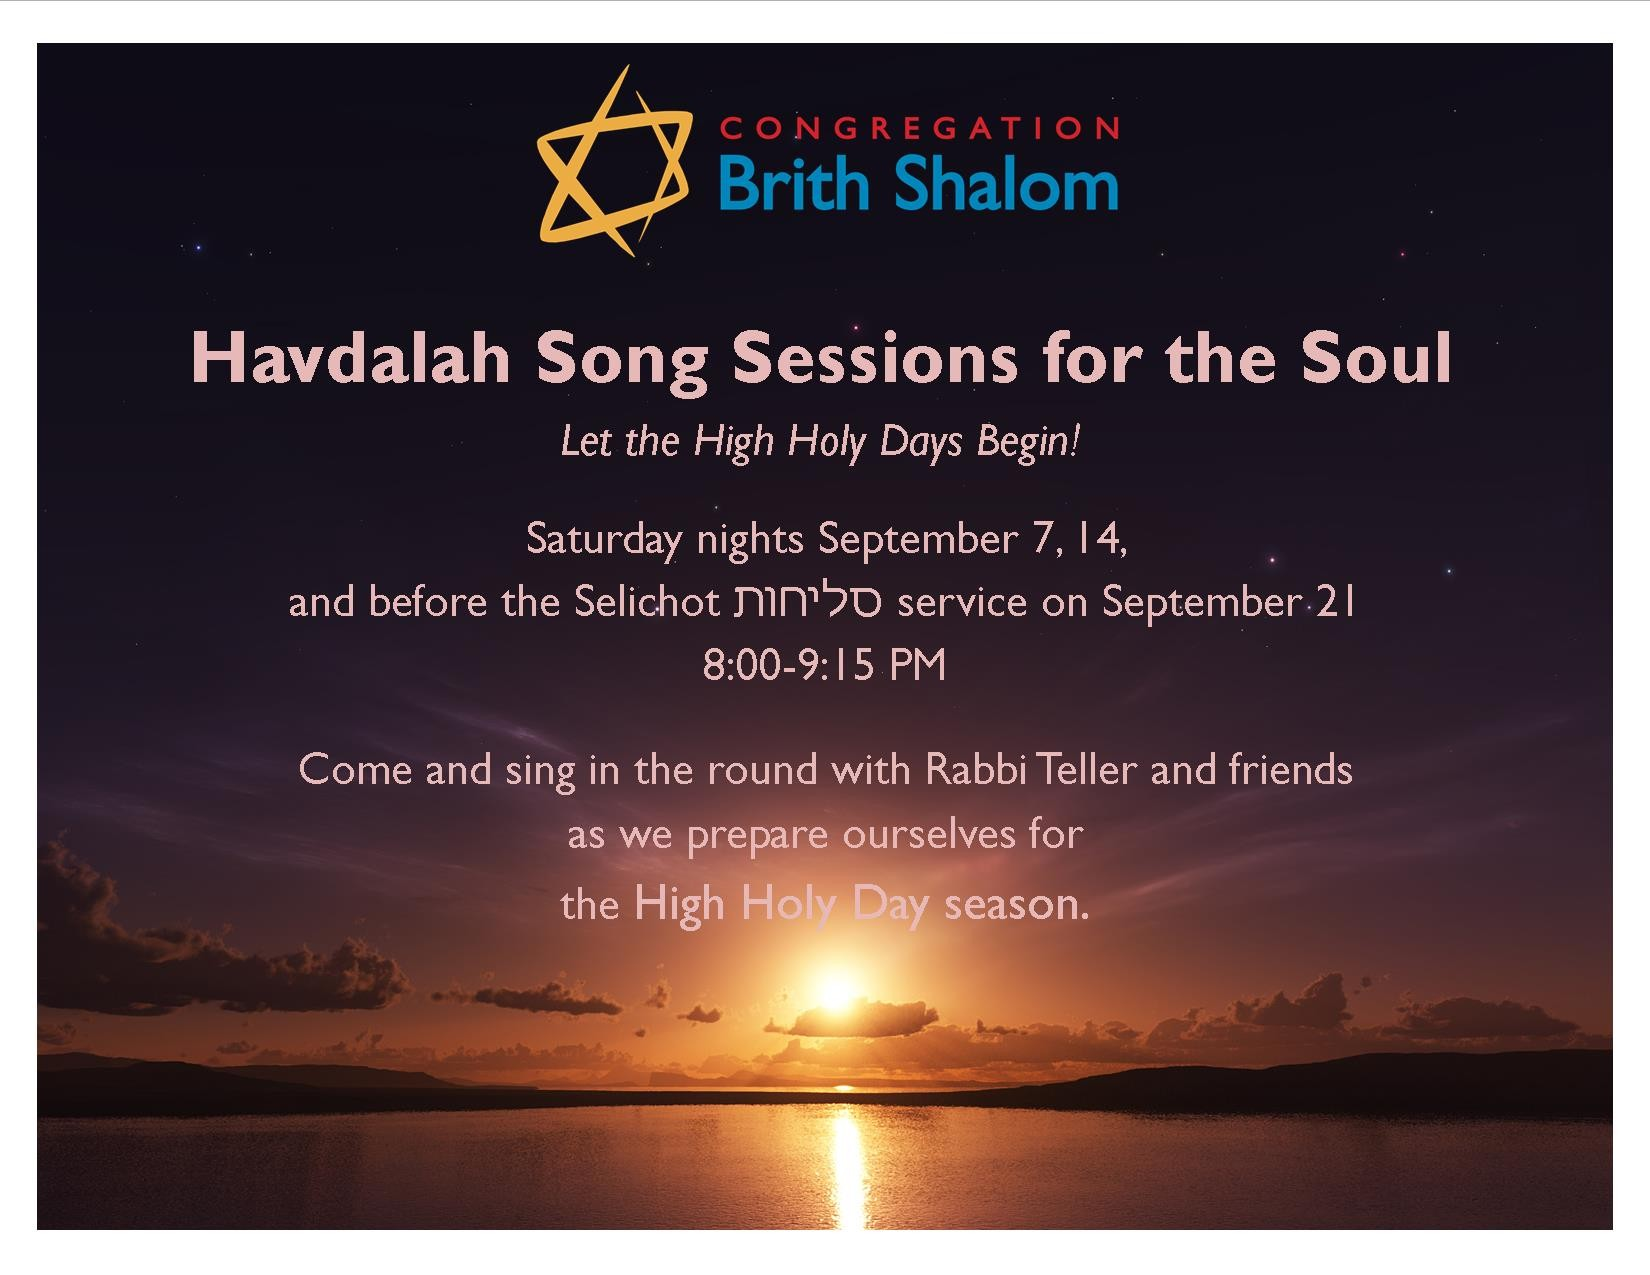 Banner Image for Havdalah Song Sessions for the Soul